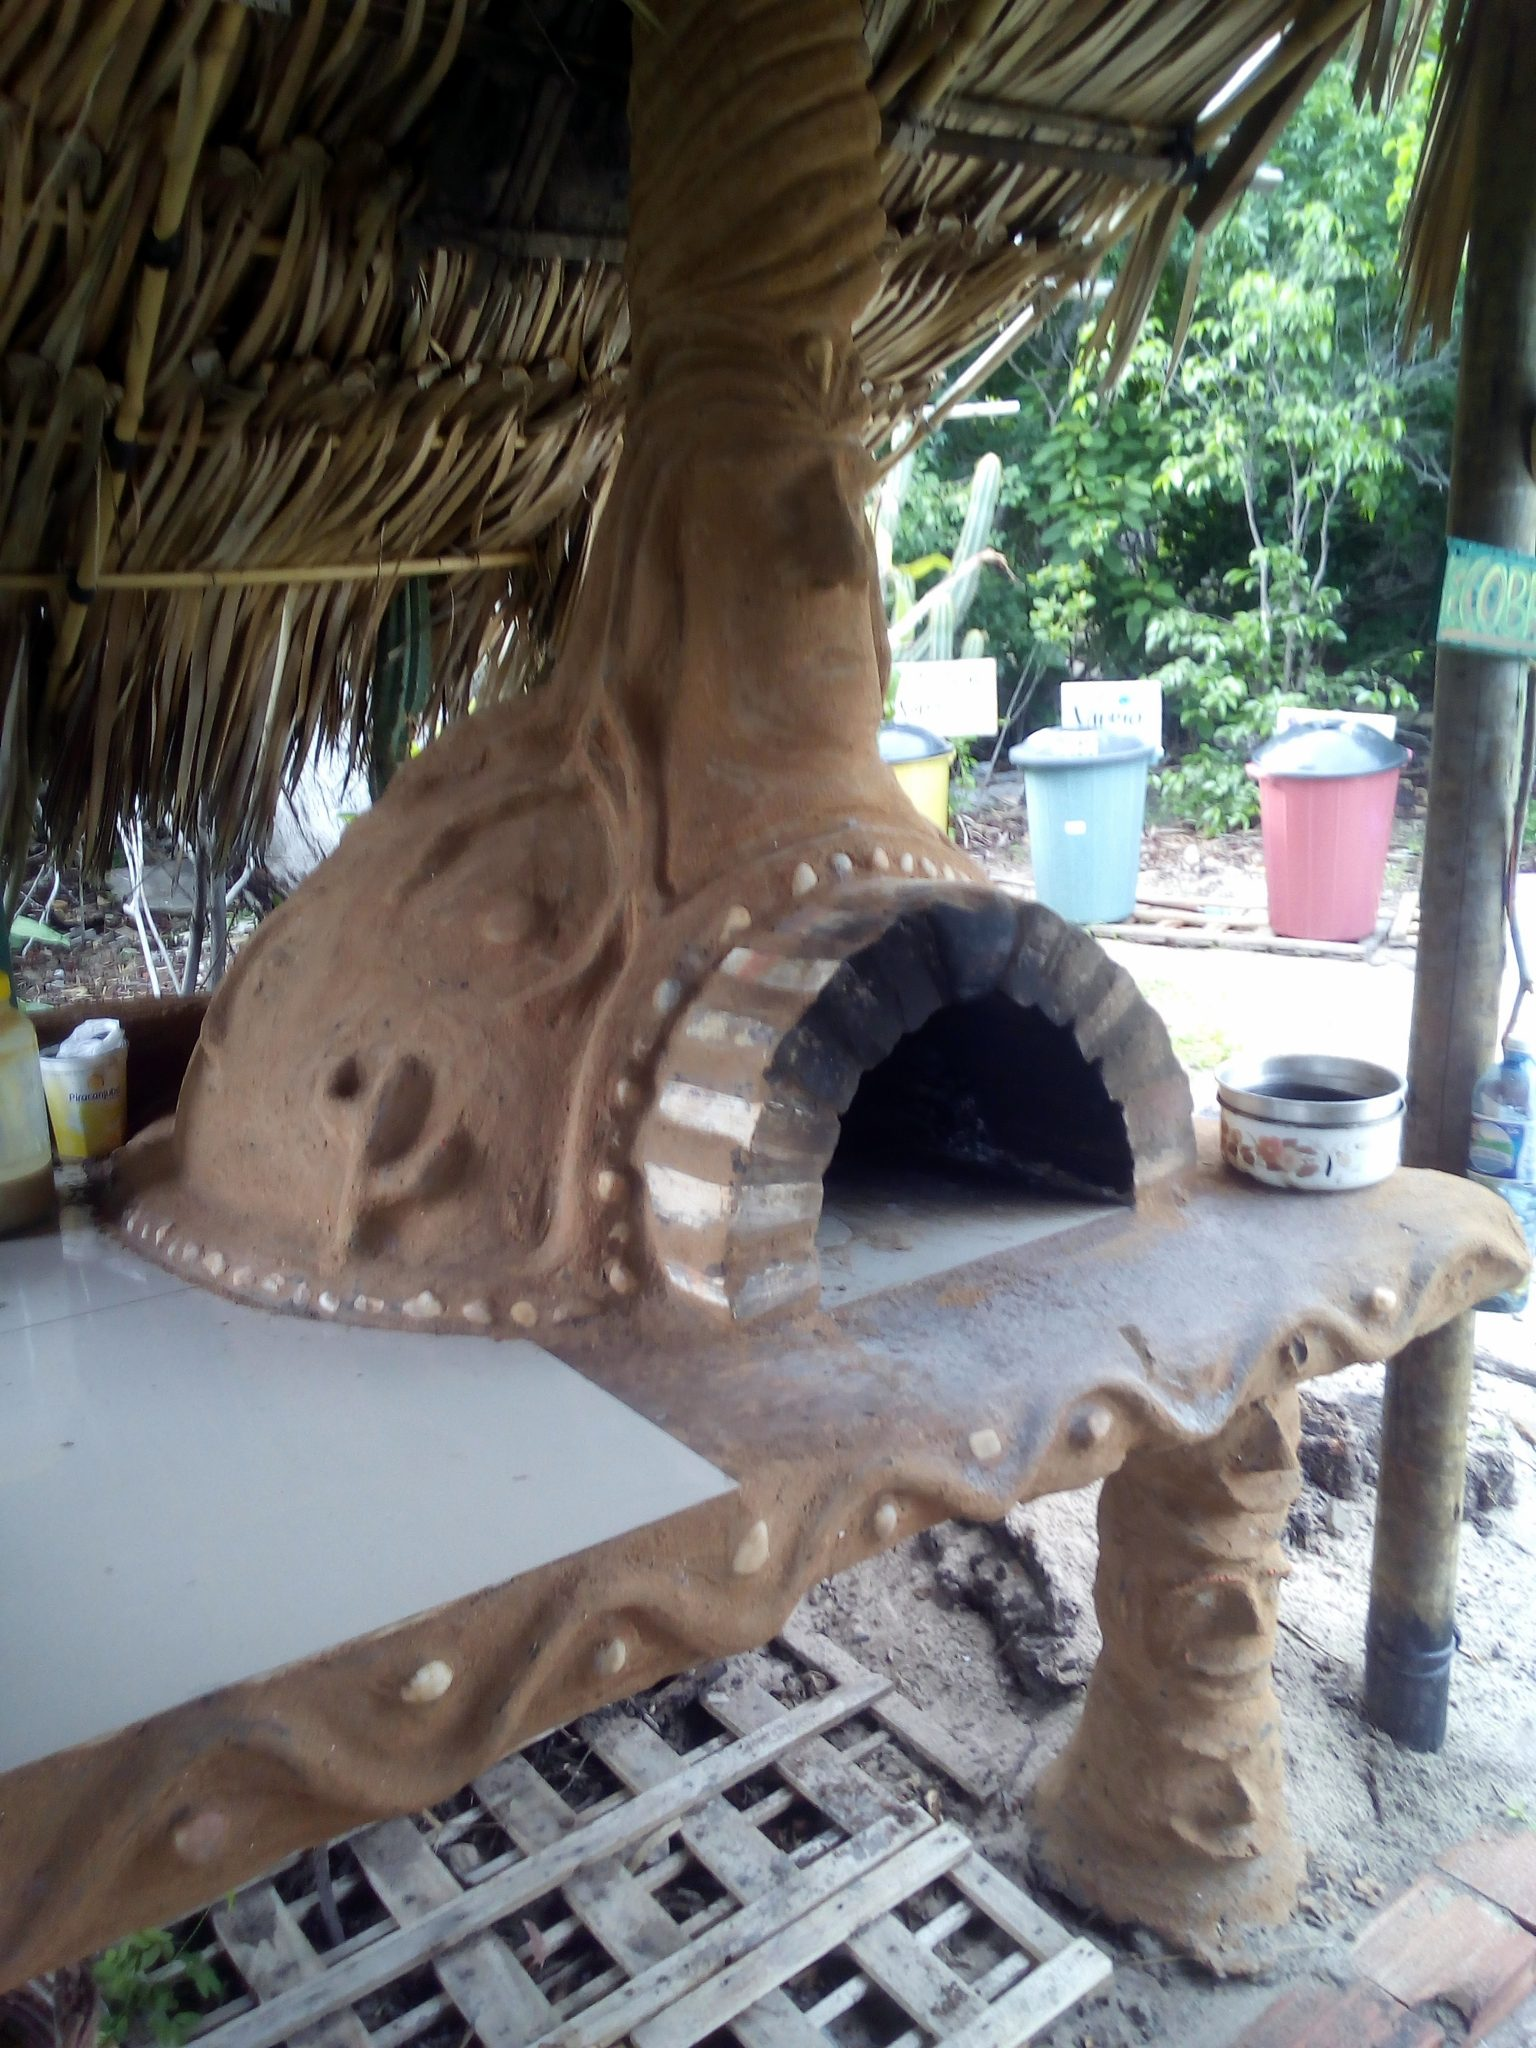 The pizza oven heats up to 300 degrees Celsius.